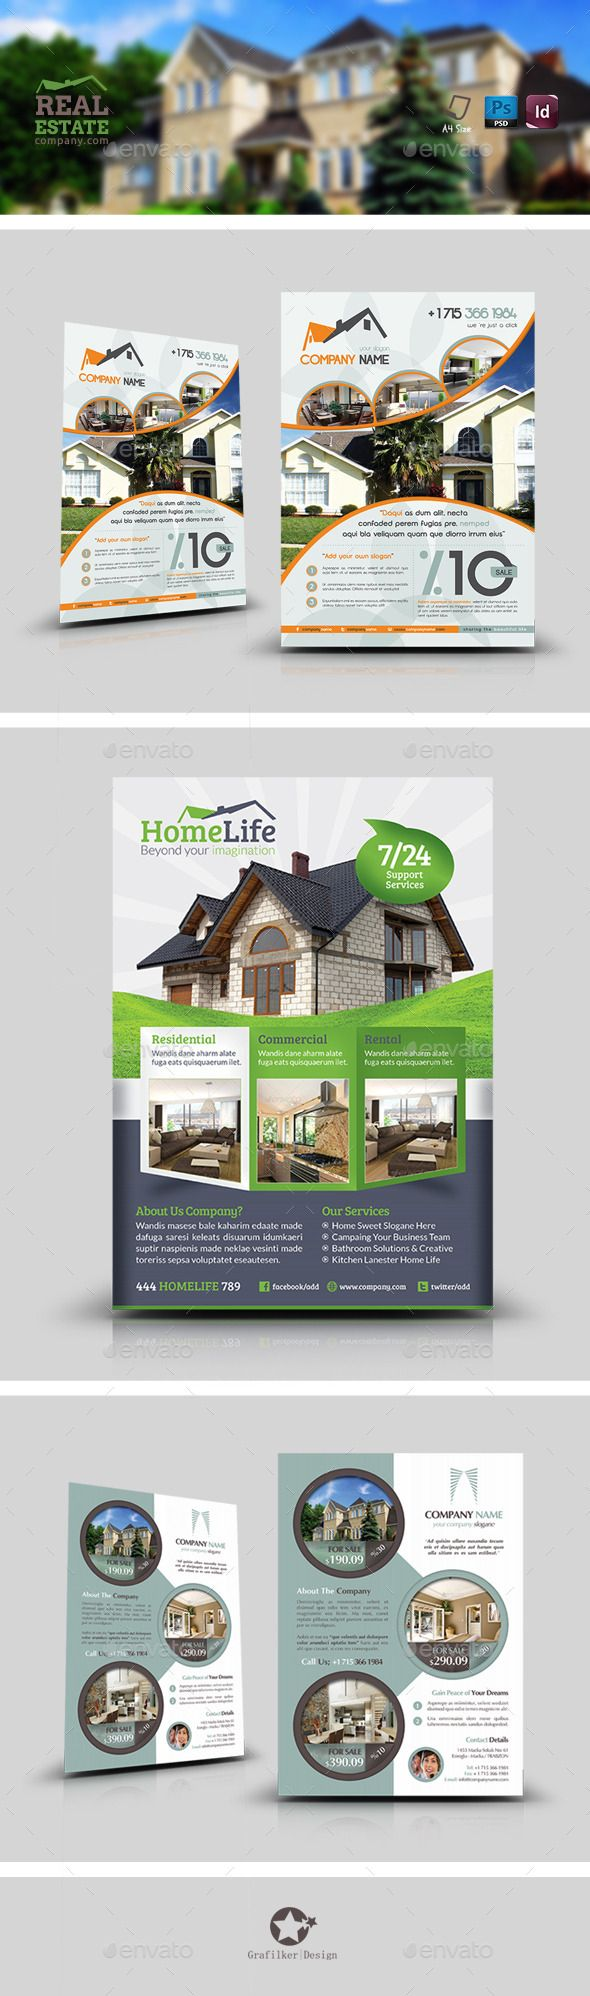 49 best Real Estate Business Flyers images on Pinterest | Business ...